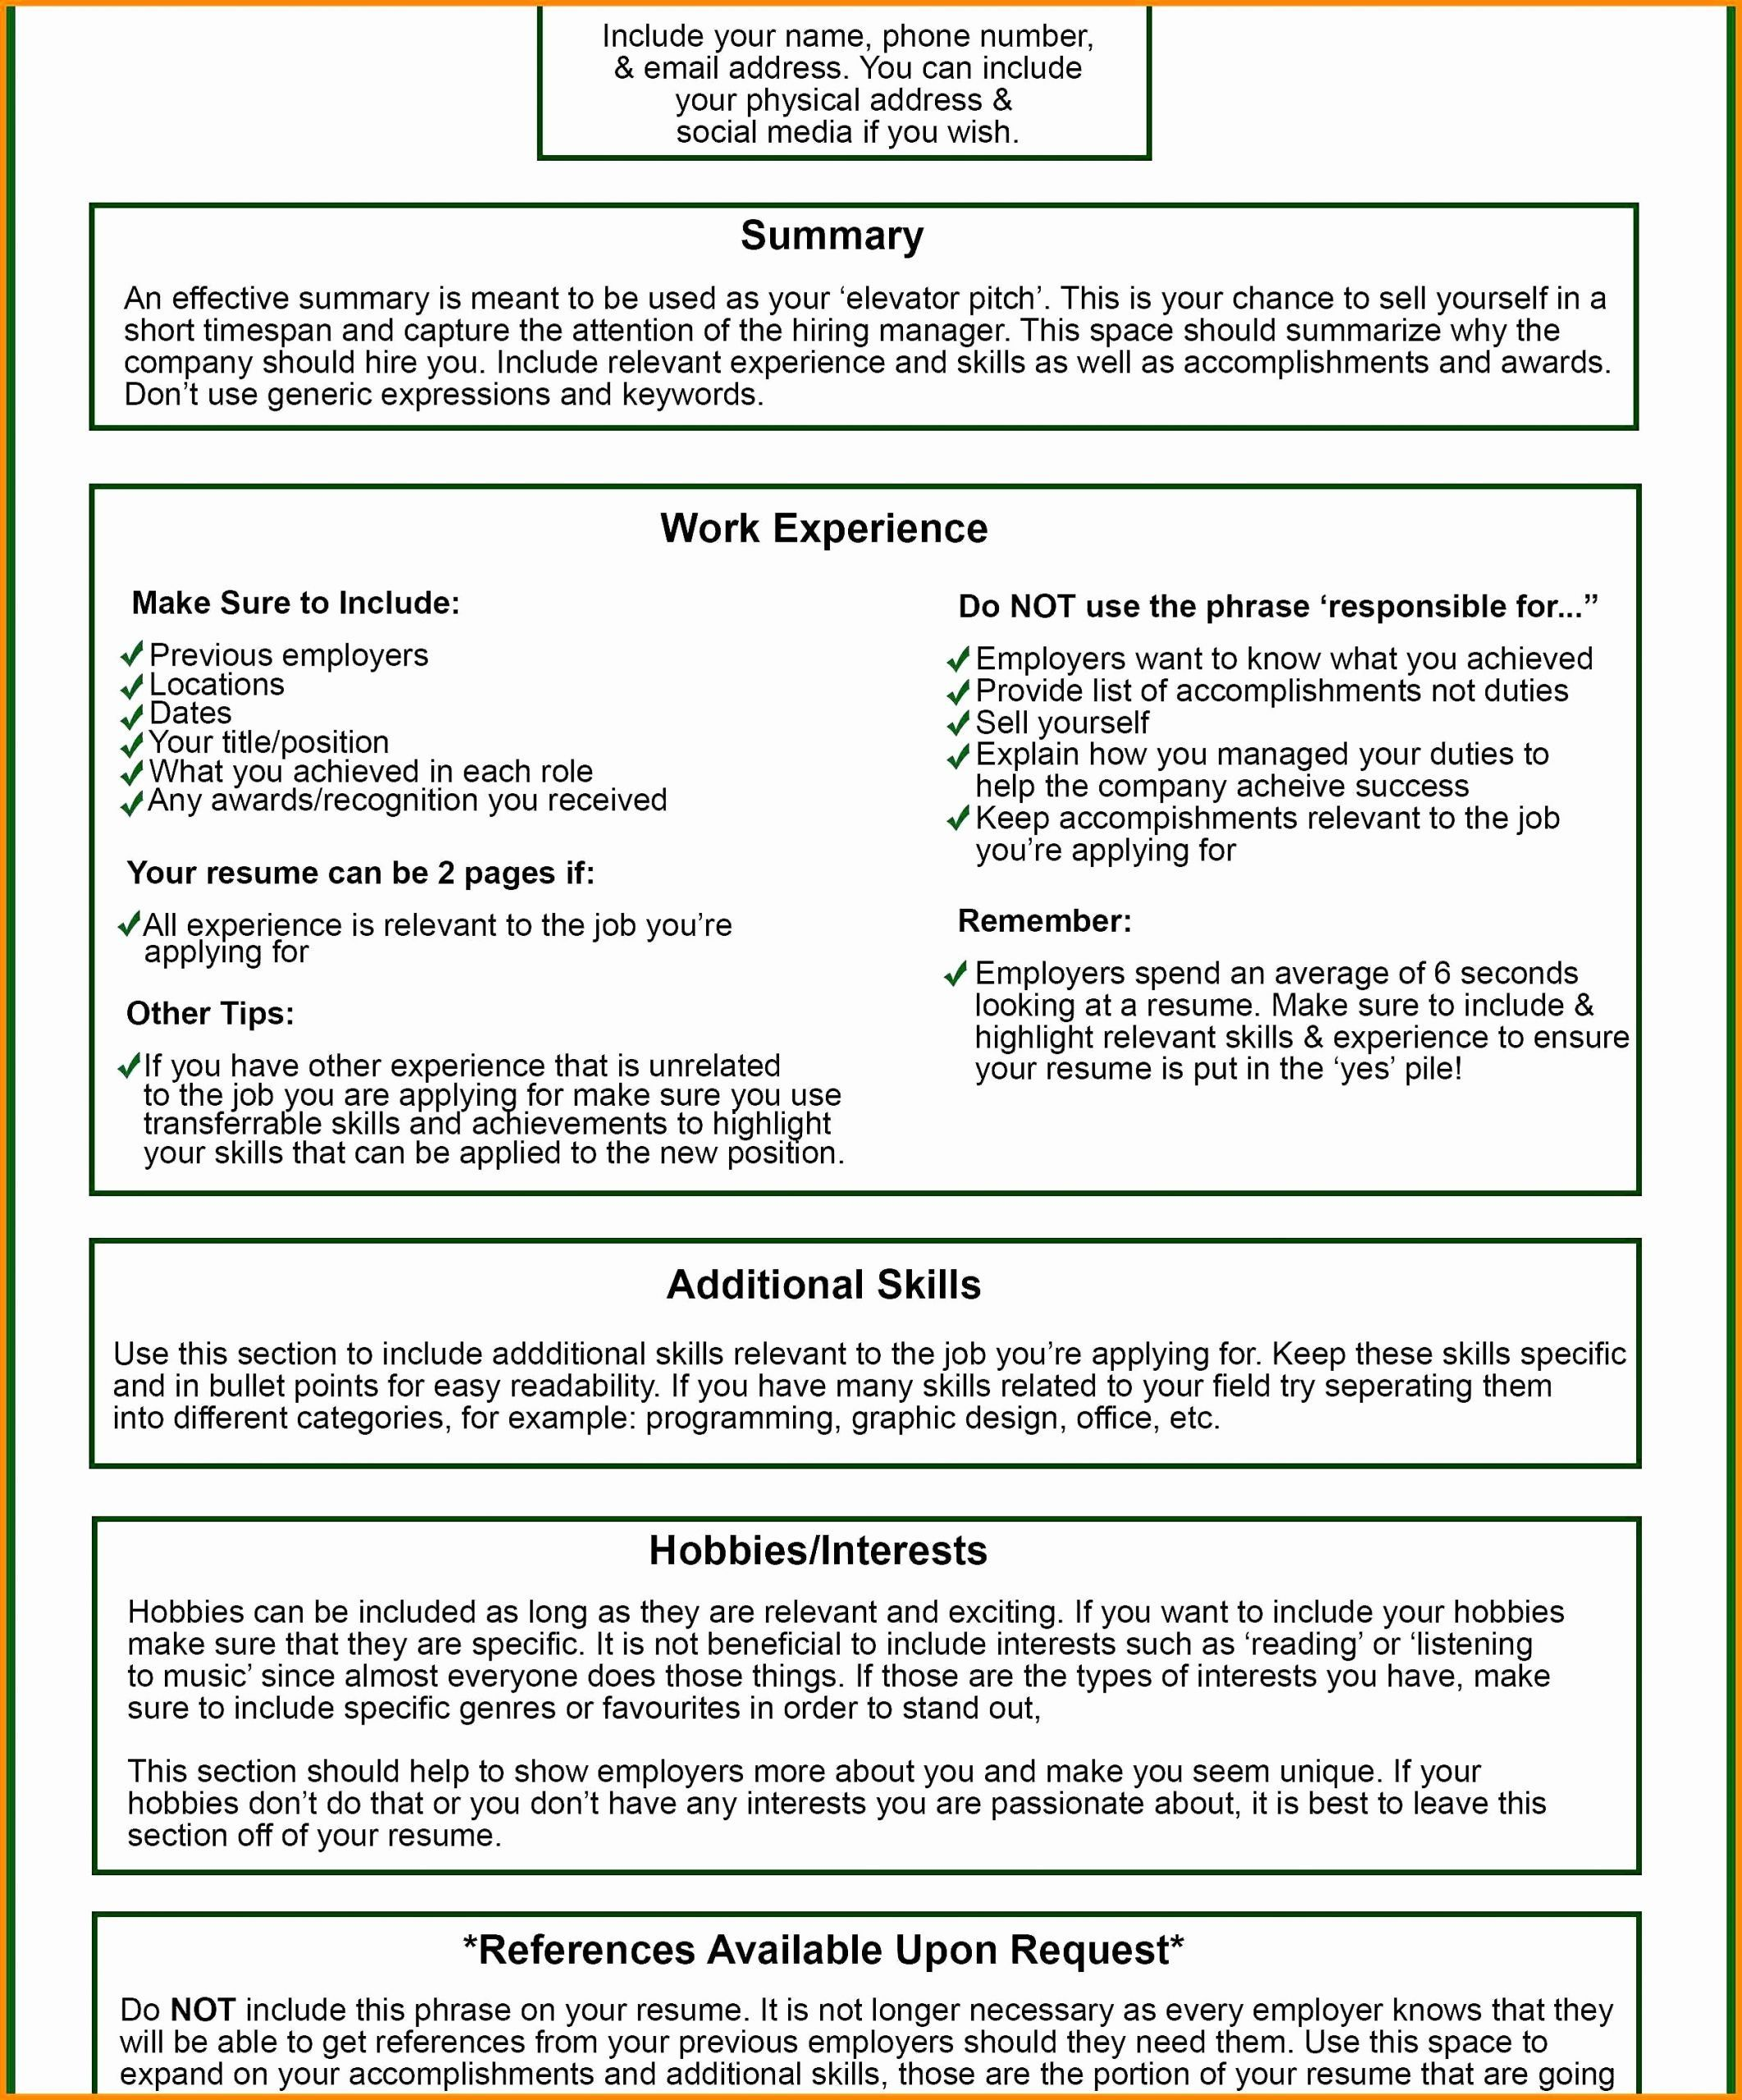 template for letter of interest luxury resumes hobbies and interests examples cv cover Resume Hobbies Good For Resume